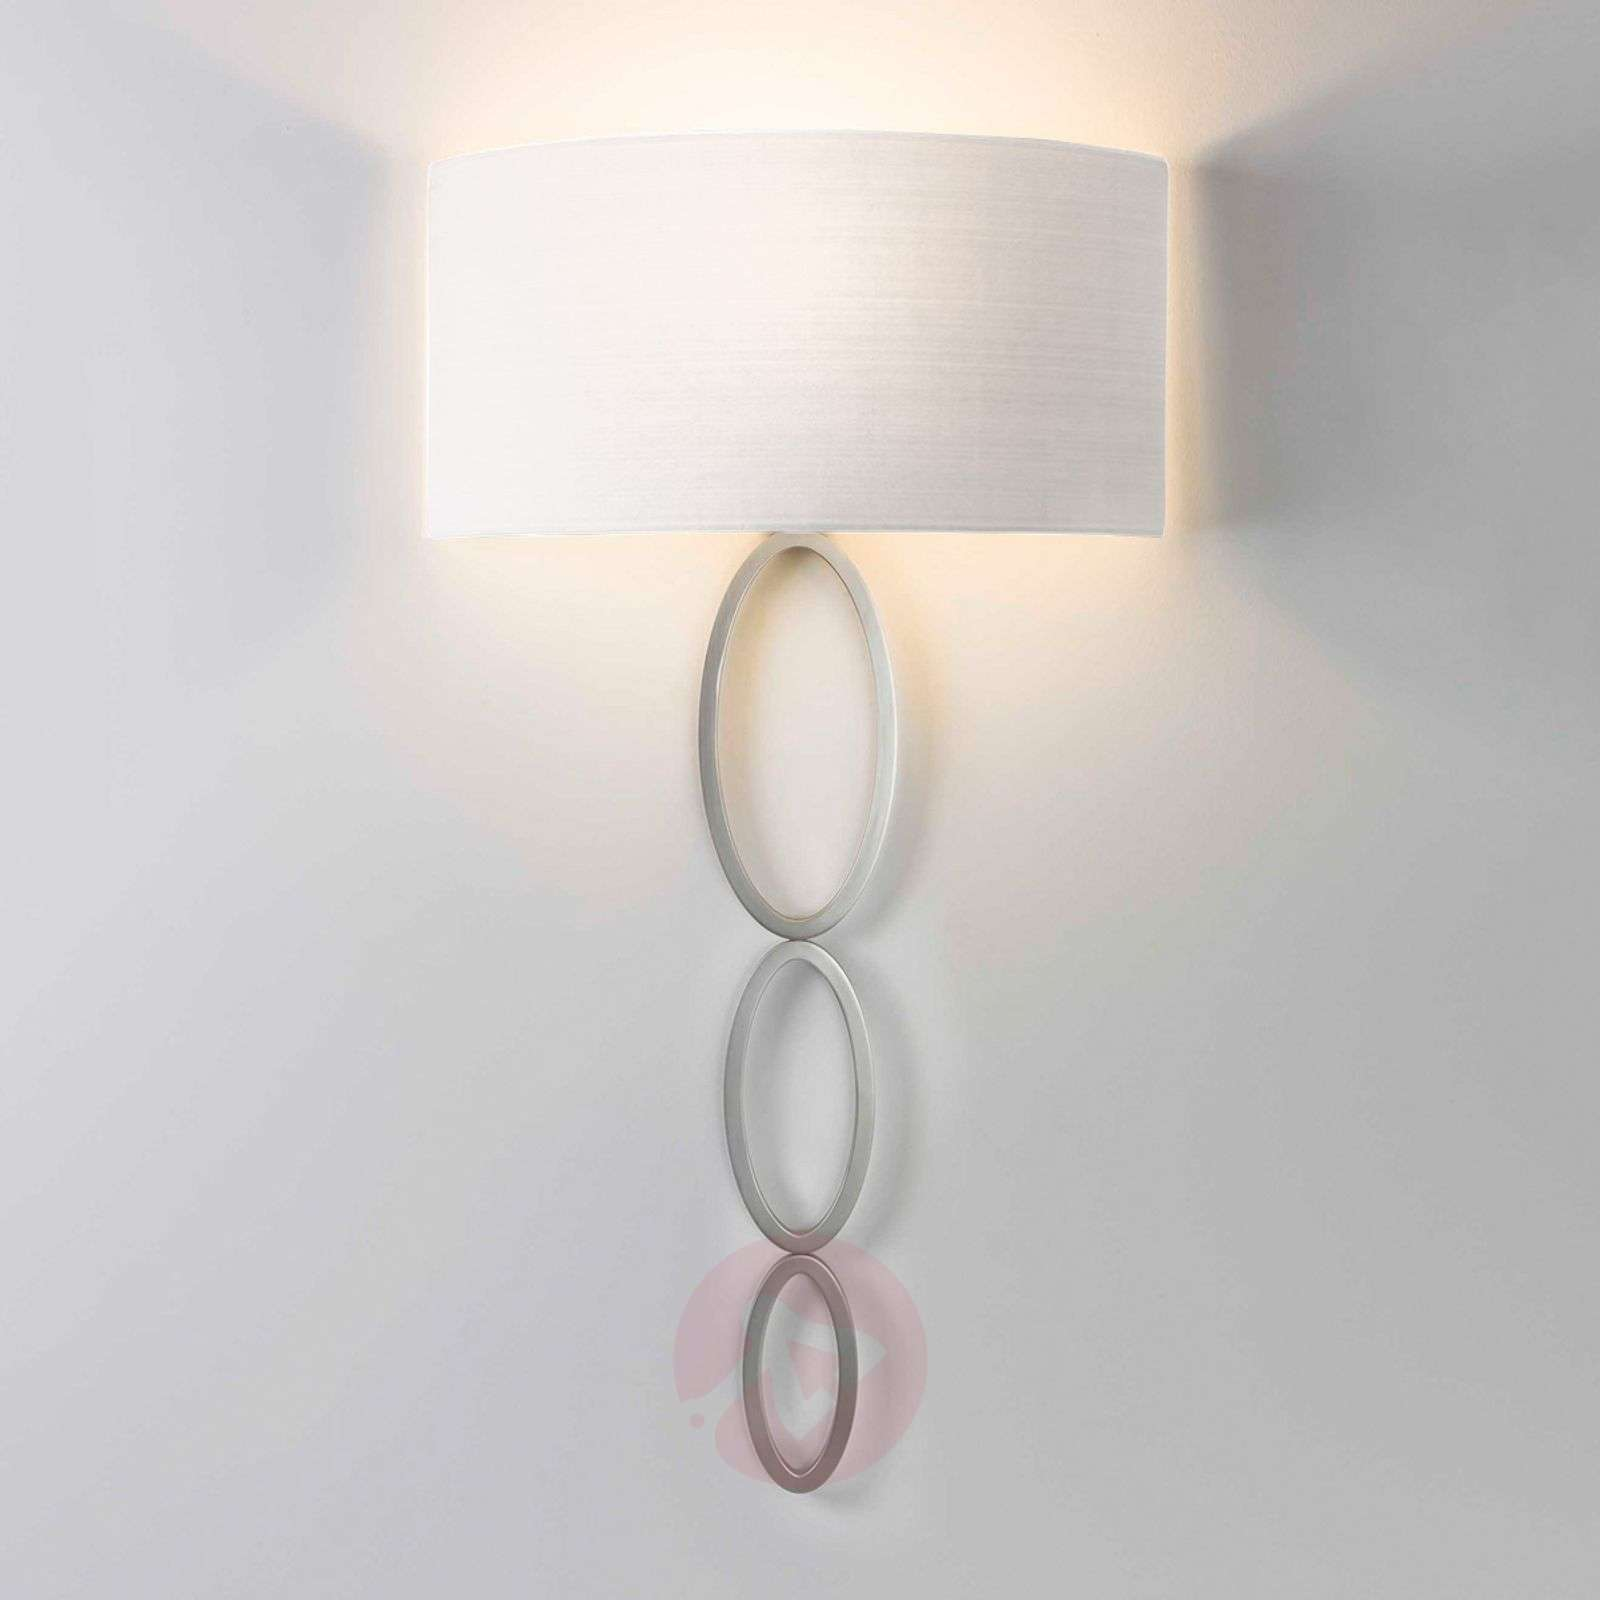 Wall light Valbonne with a white lampshade, nickel-1020513-01